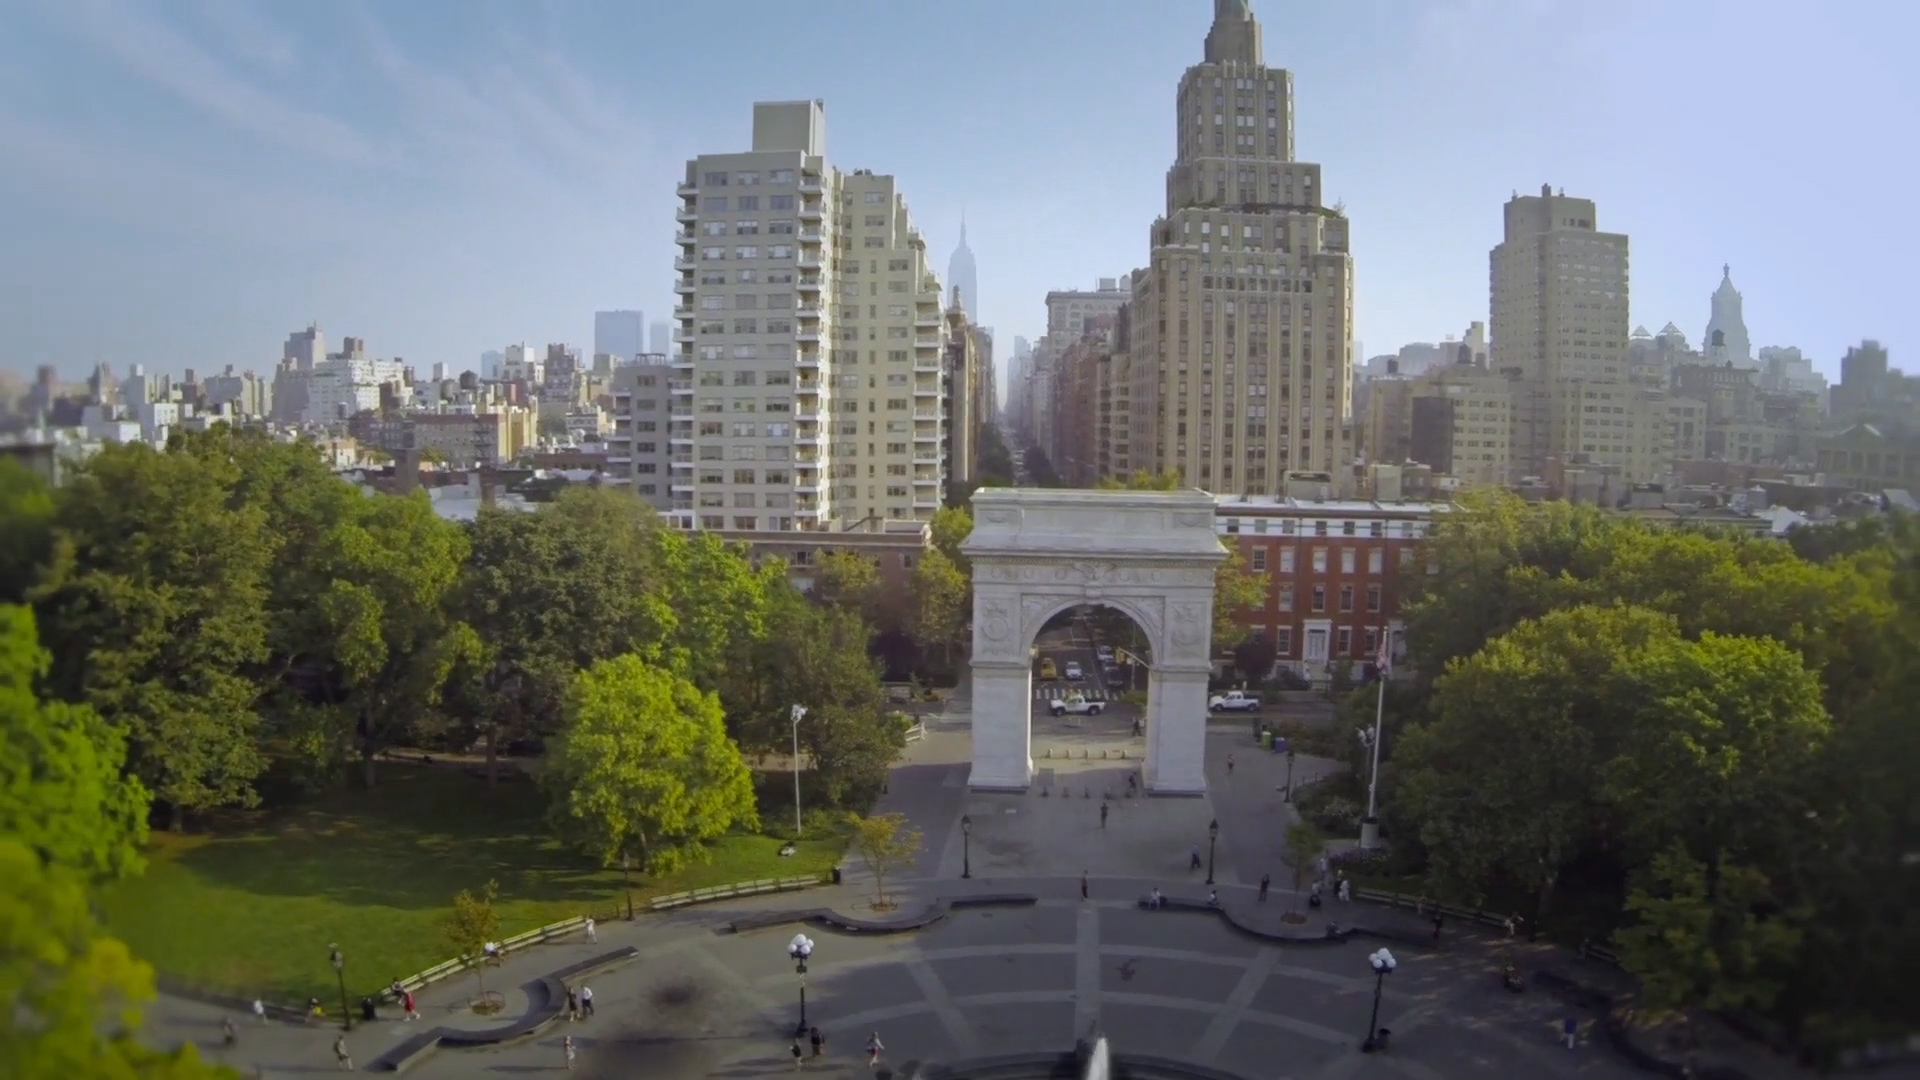 New York City Drone Film Festival takes flight